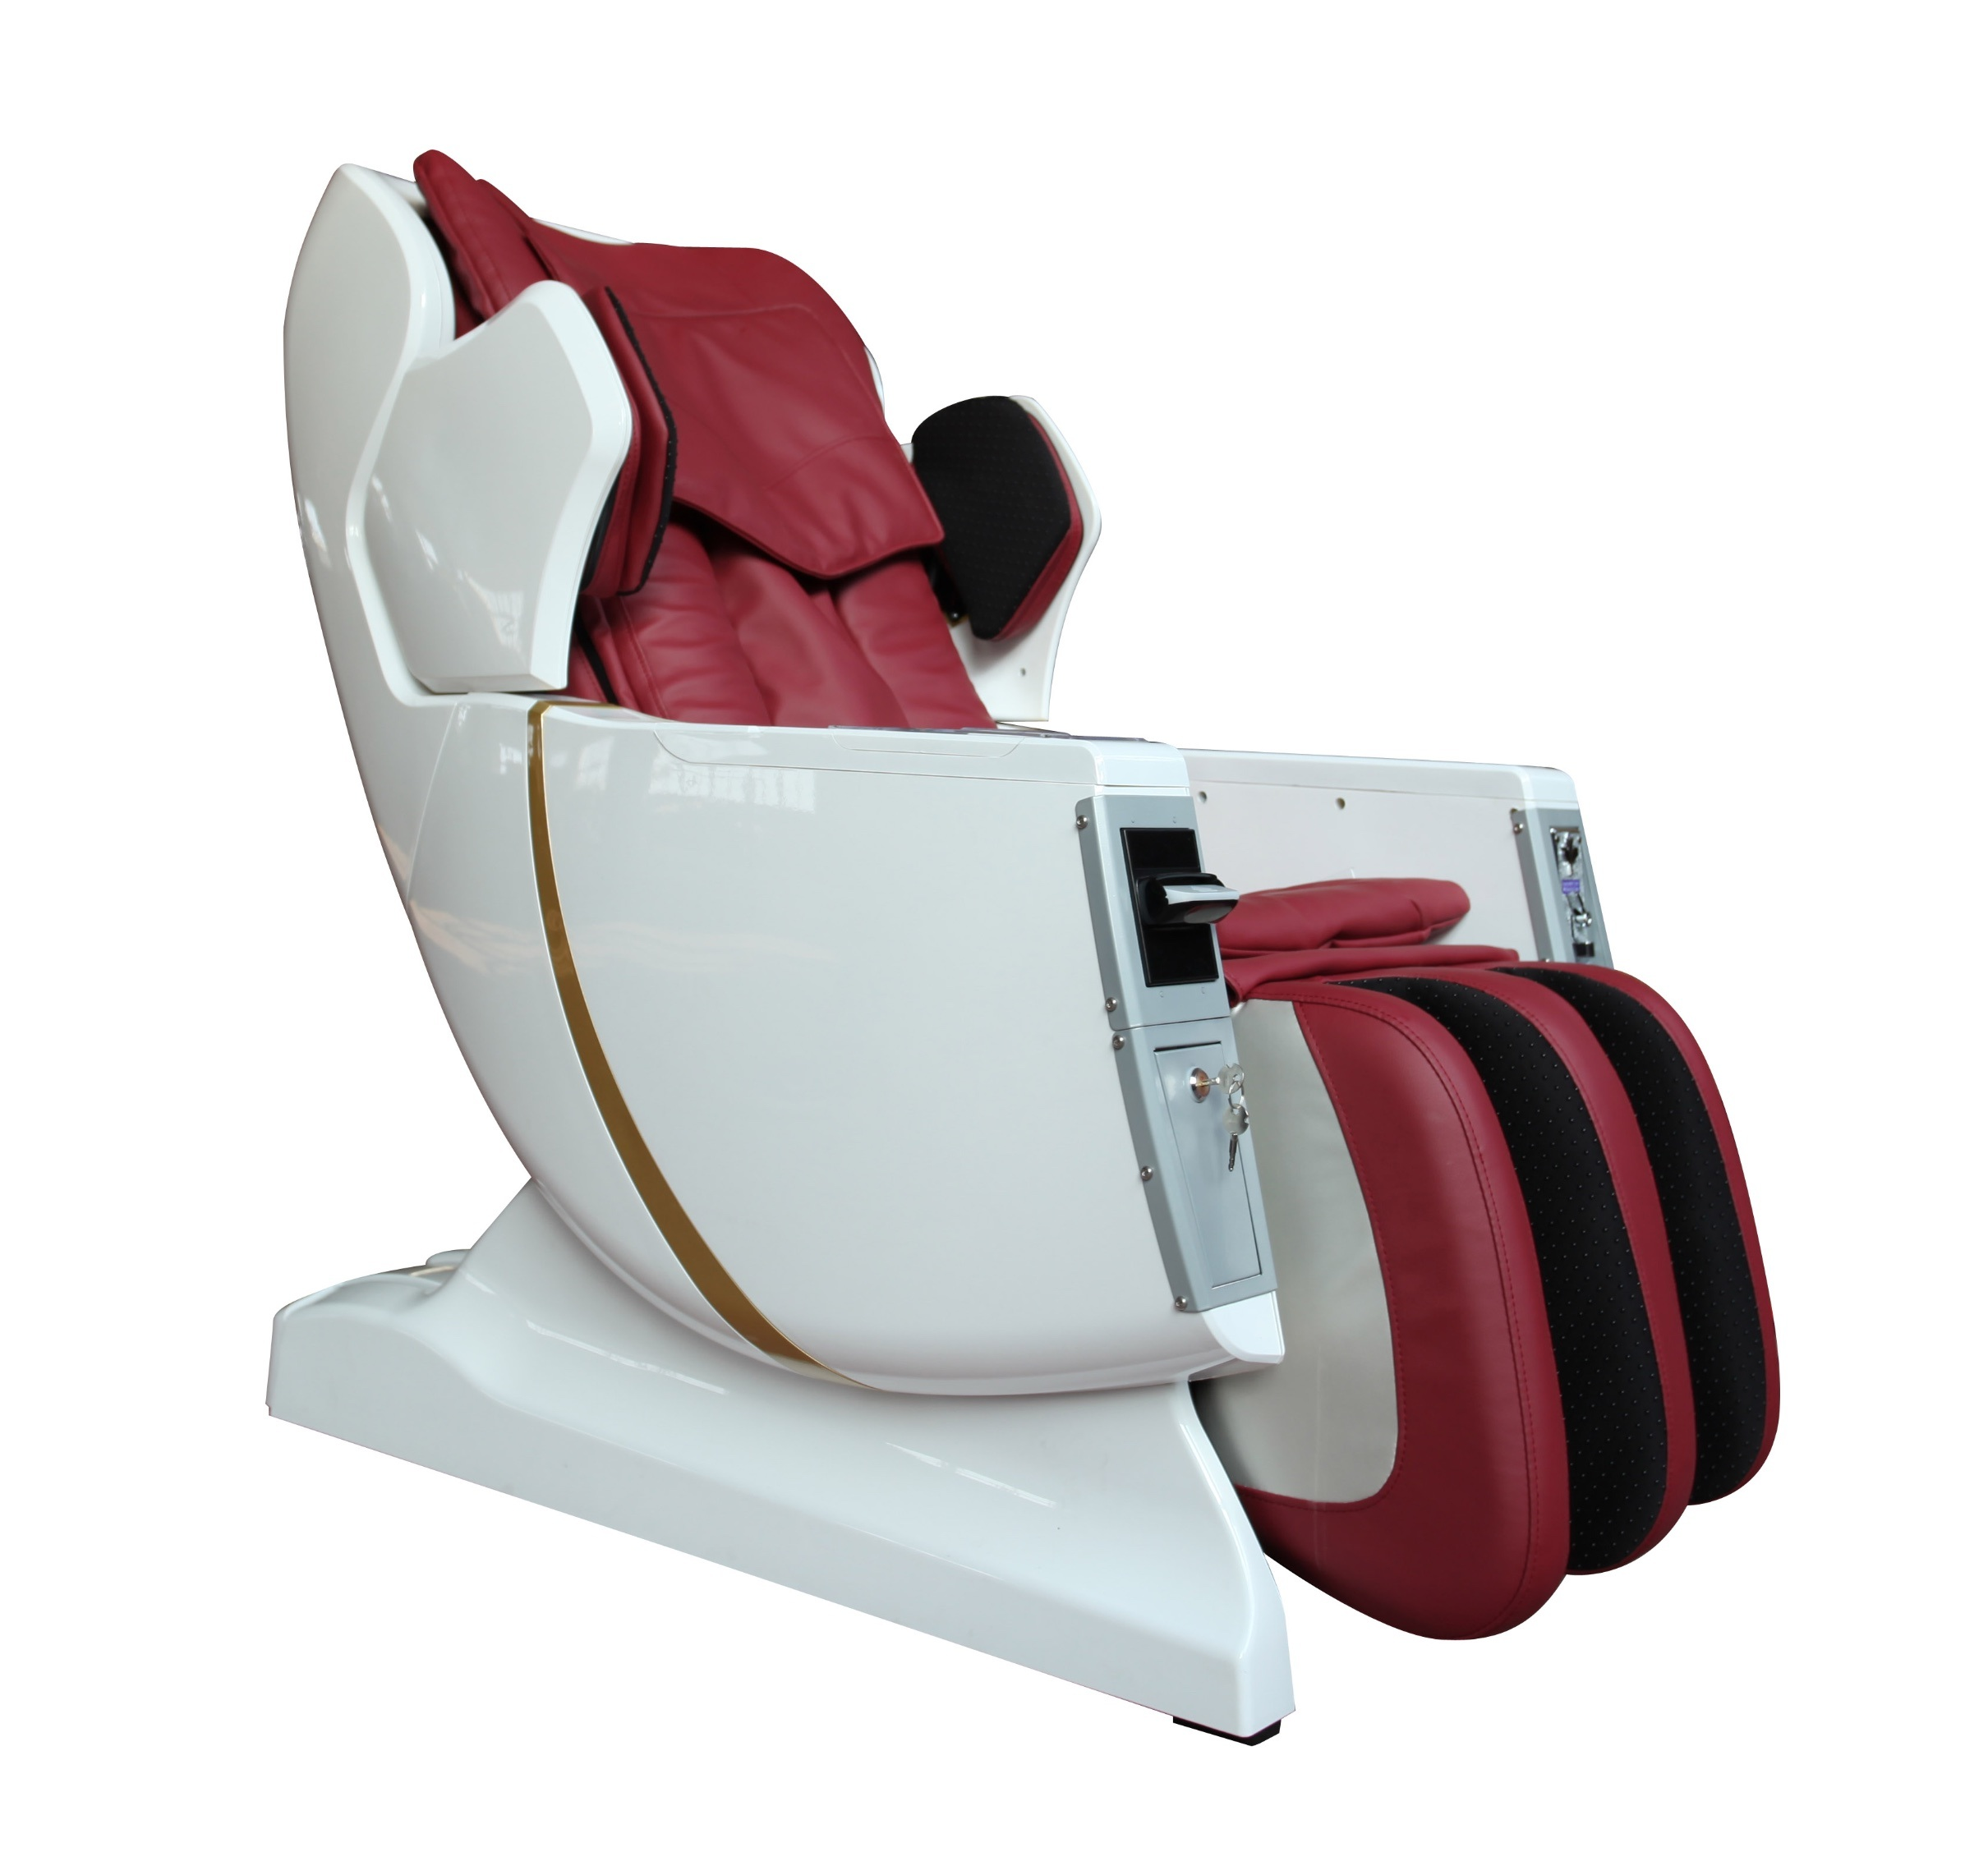 vending massage chairs. China Paypal Credit Card Coin Bill Vending Massage Chair For Airport And Shopping Malls - Machine, Chairs